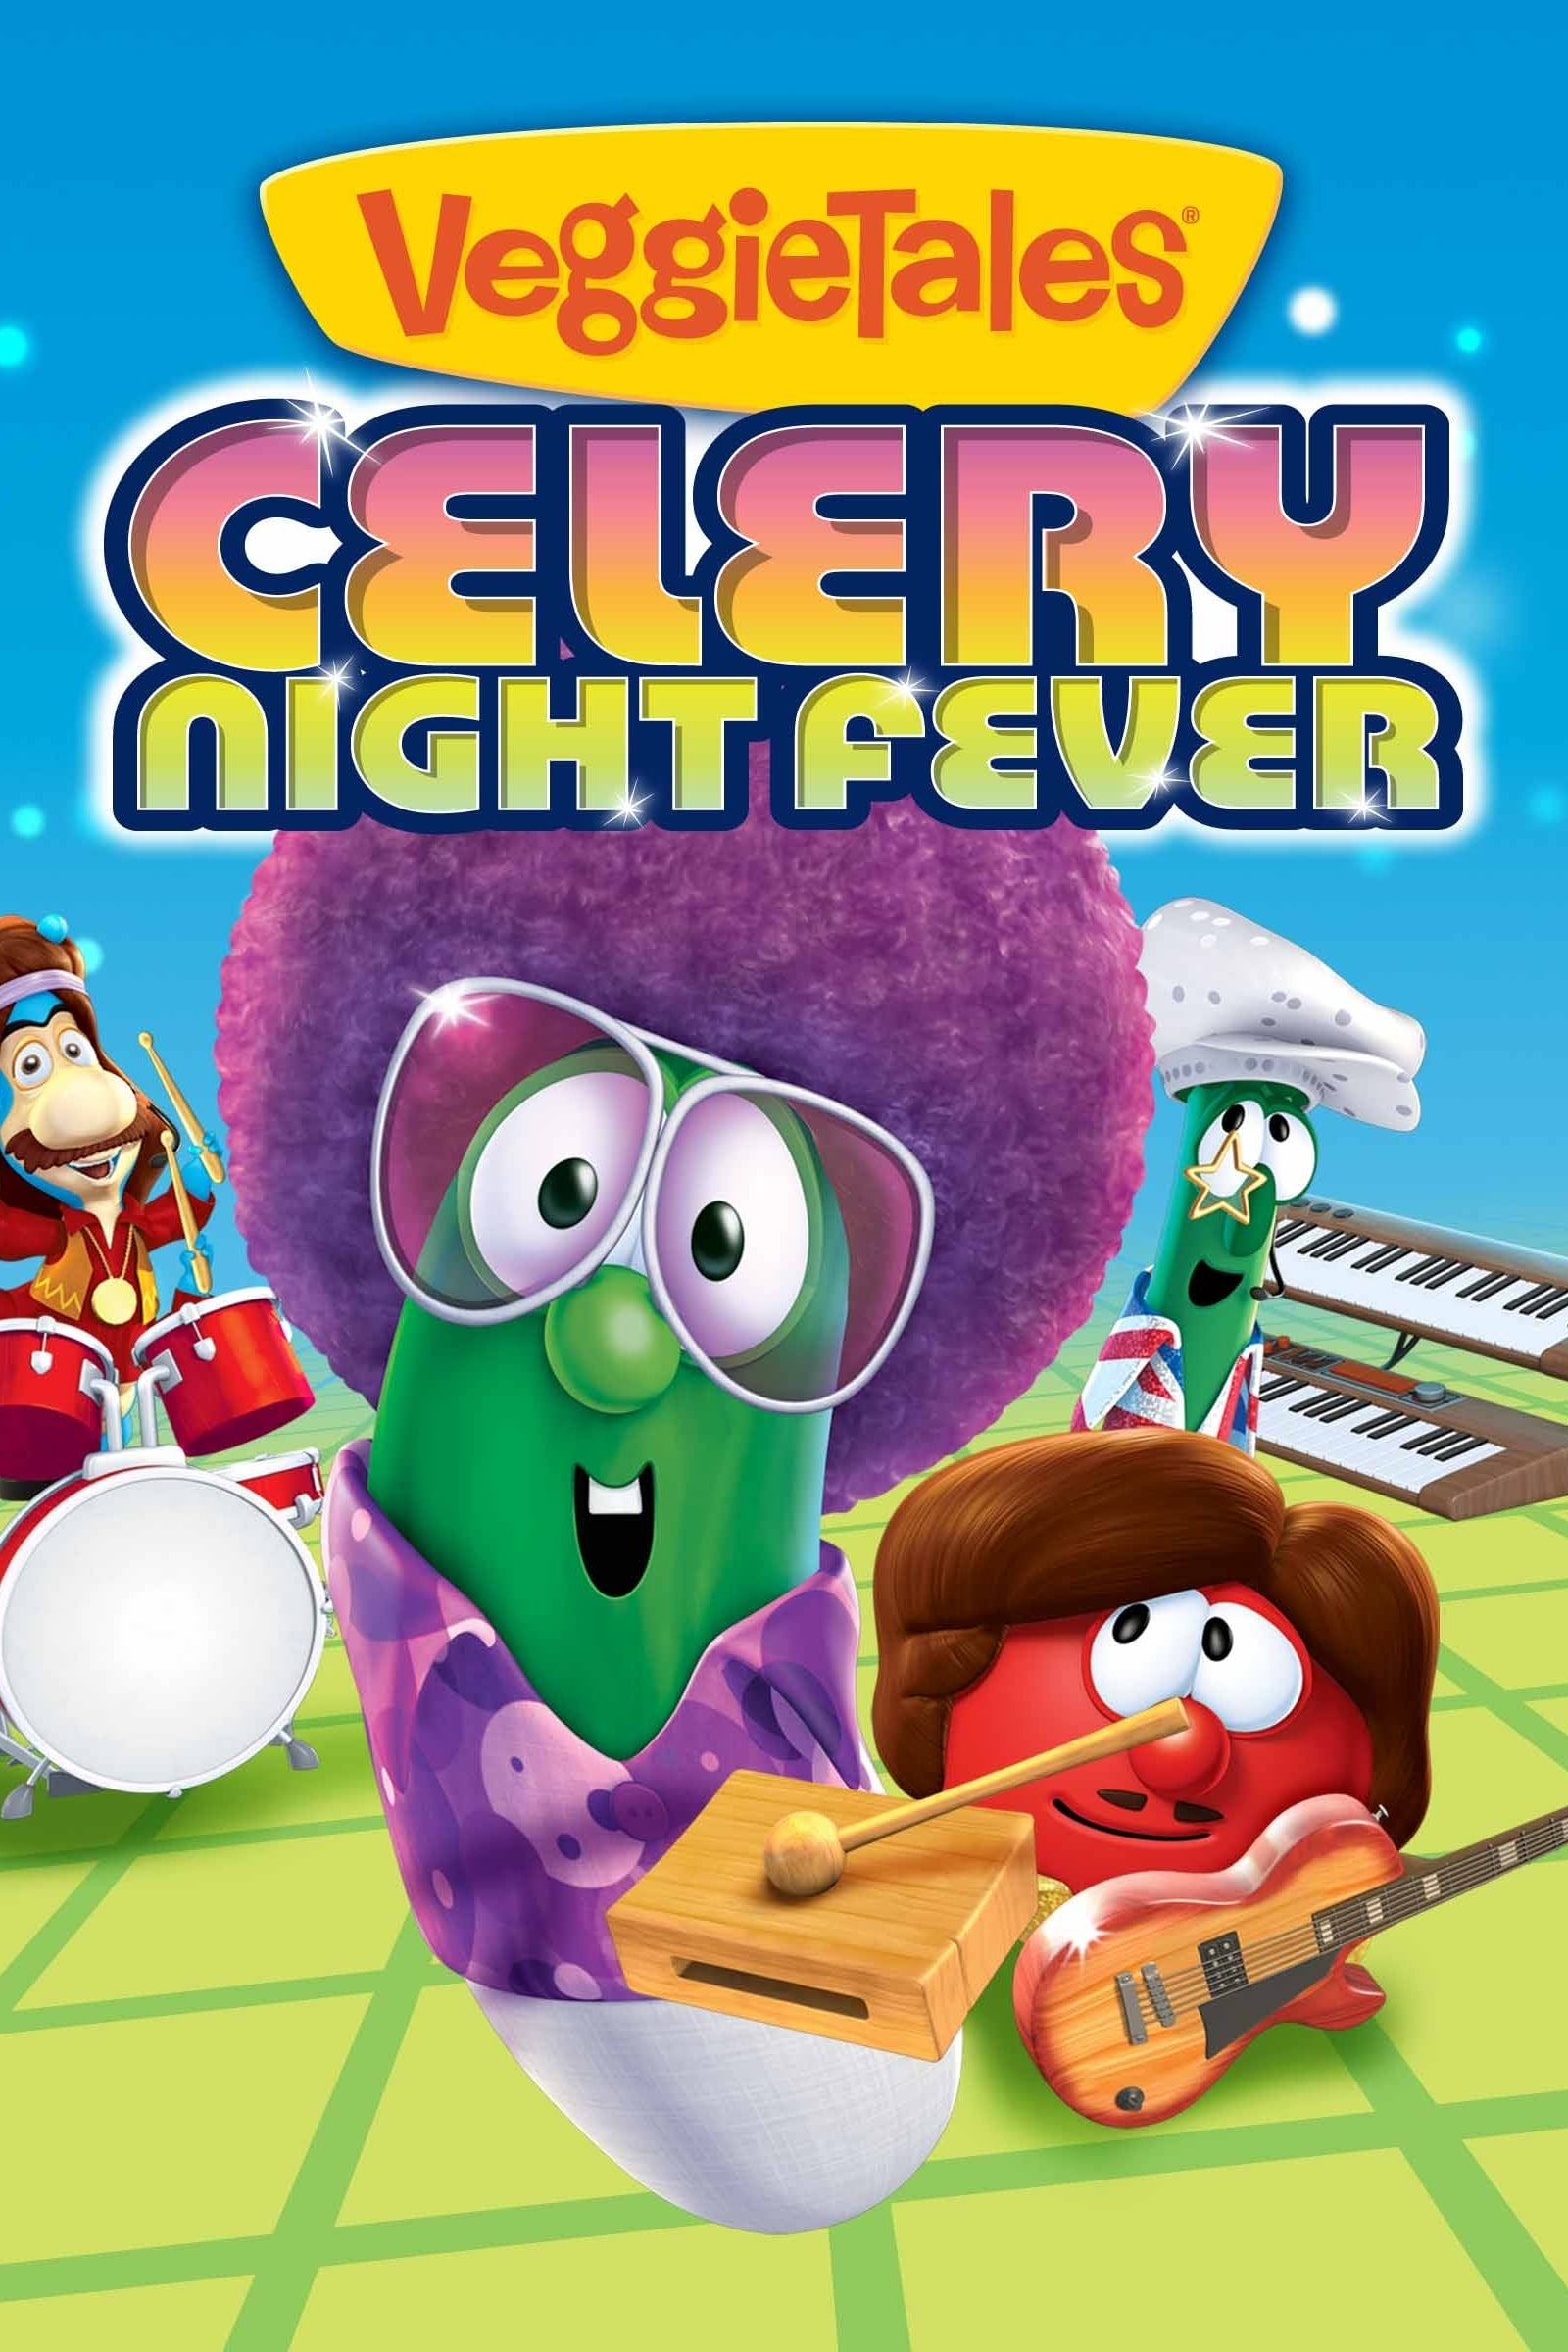 VeggieTales: Celery Night Fever Movie Streaming Online